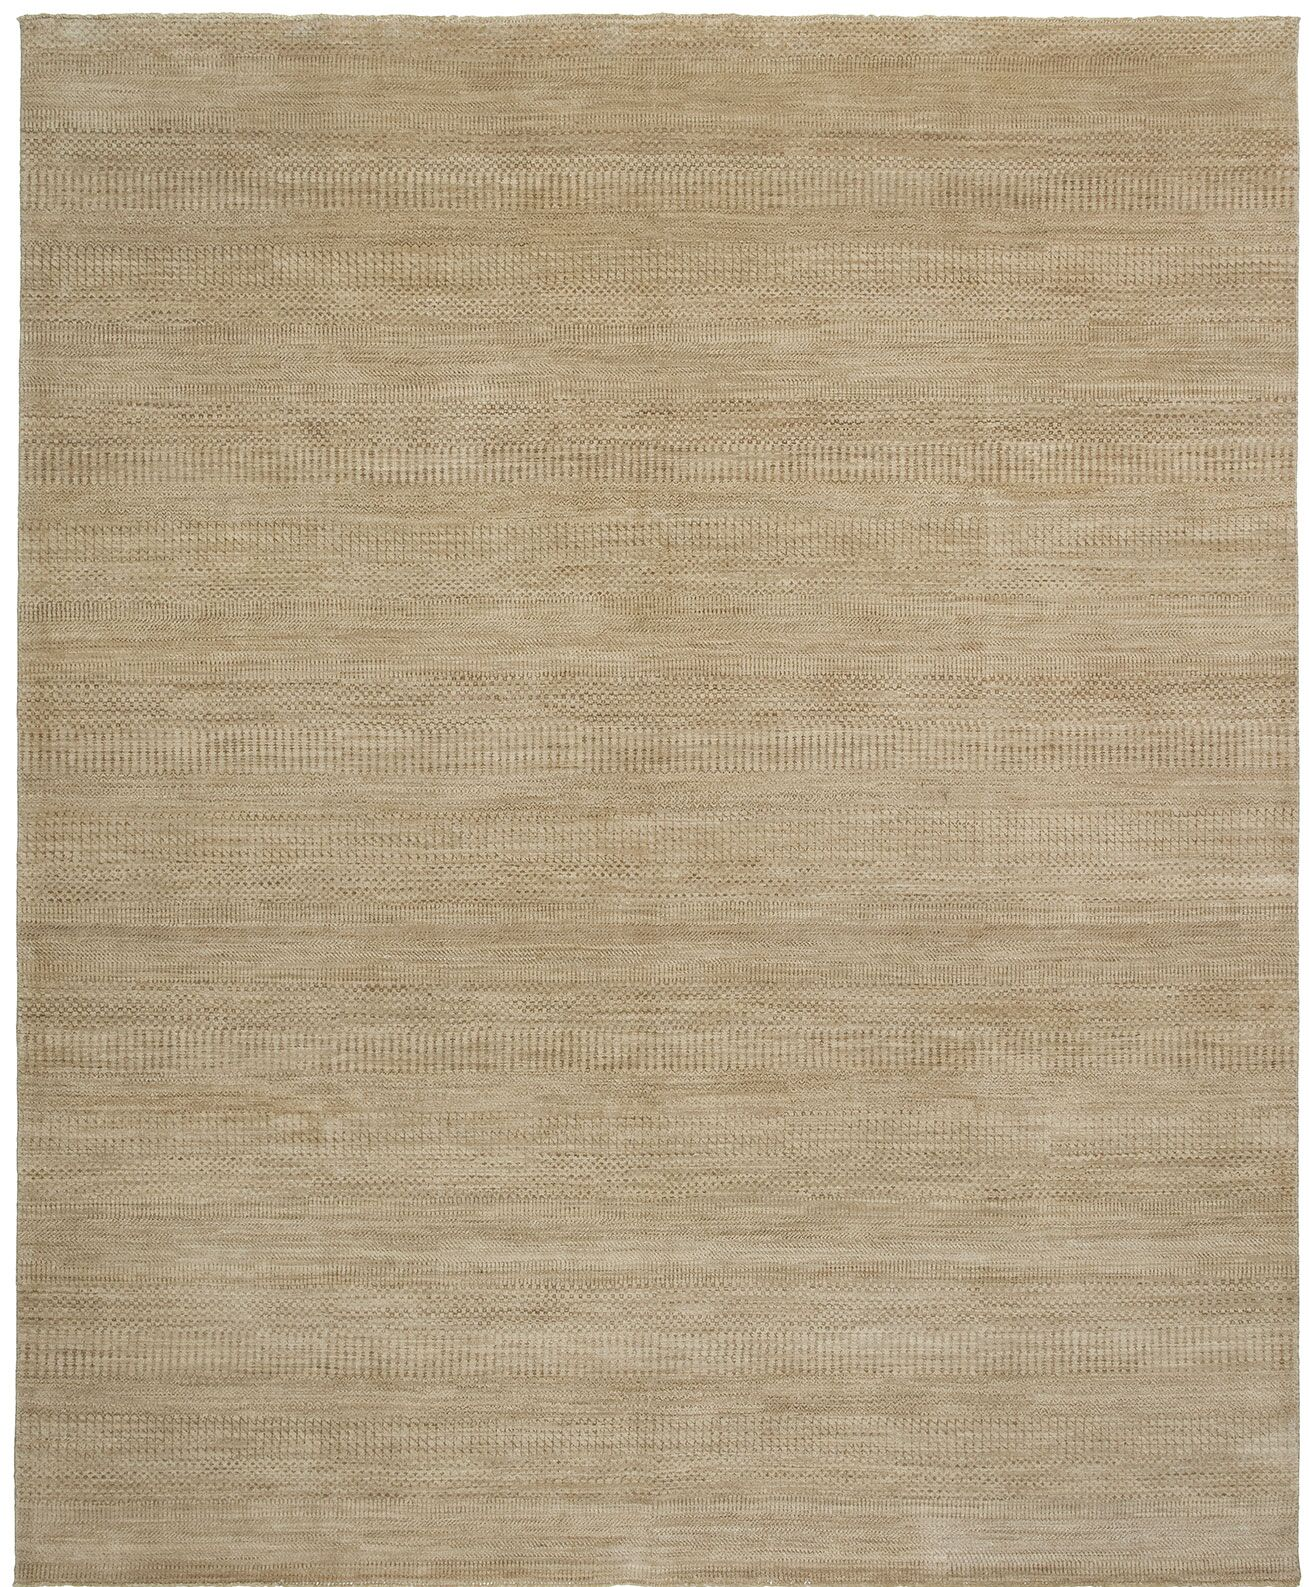 Illusions Hand-Knotted Beige Area Rug Rug Size: 9' x 12'